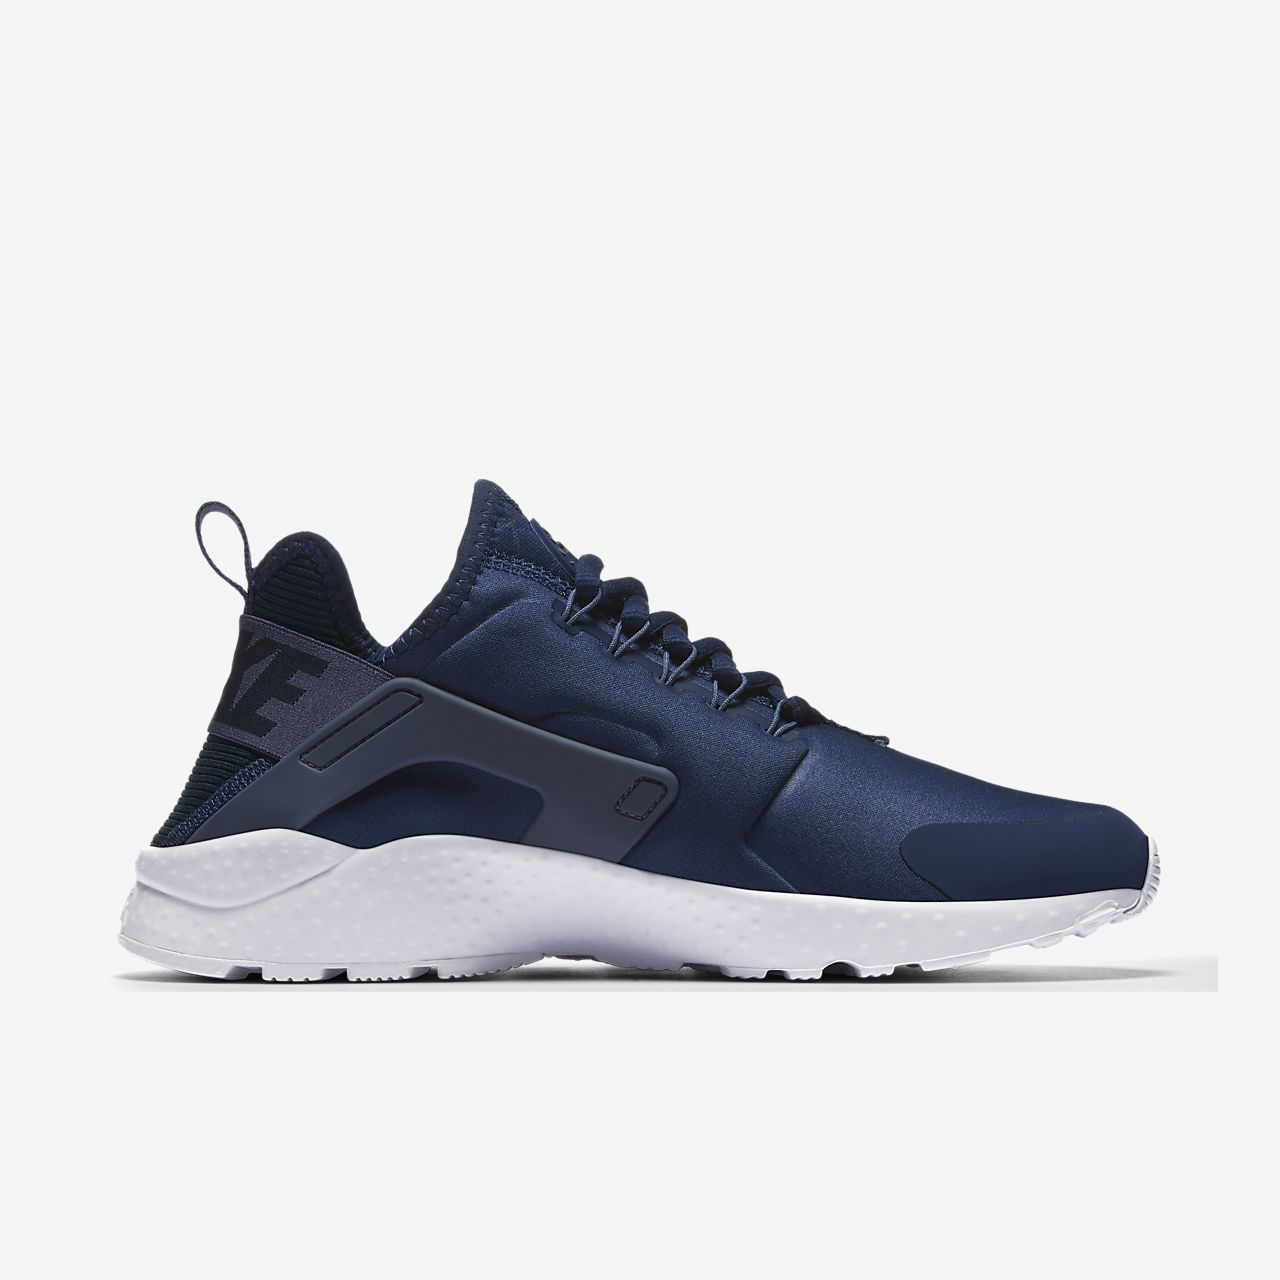 ... Nike Air Huarache Ultra Women's Shoe